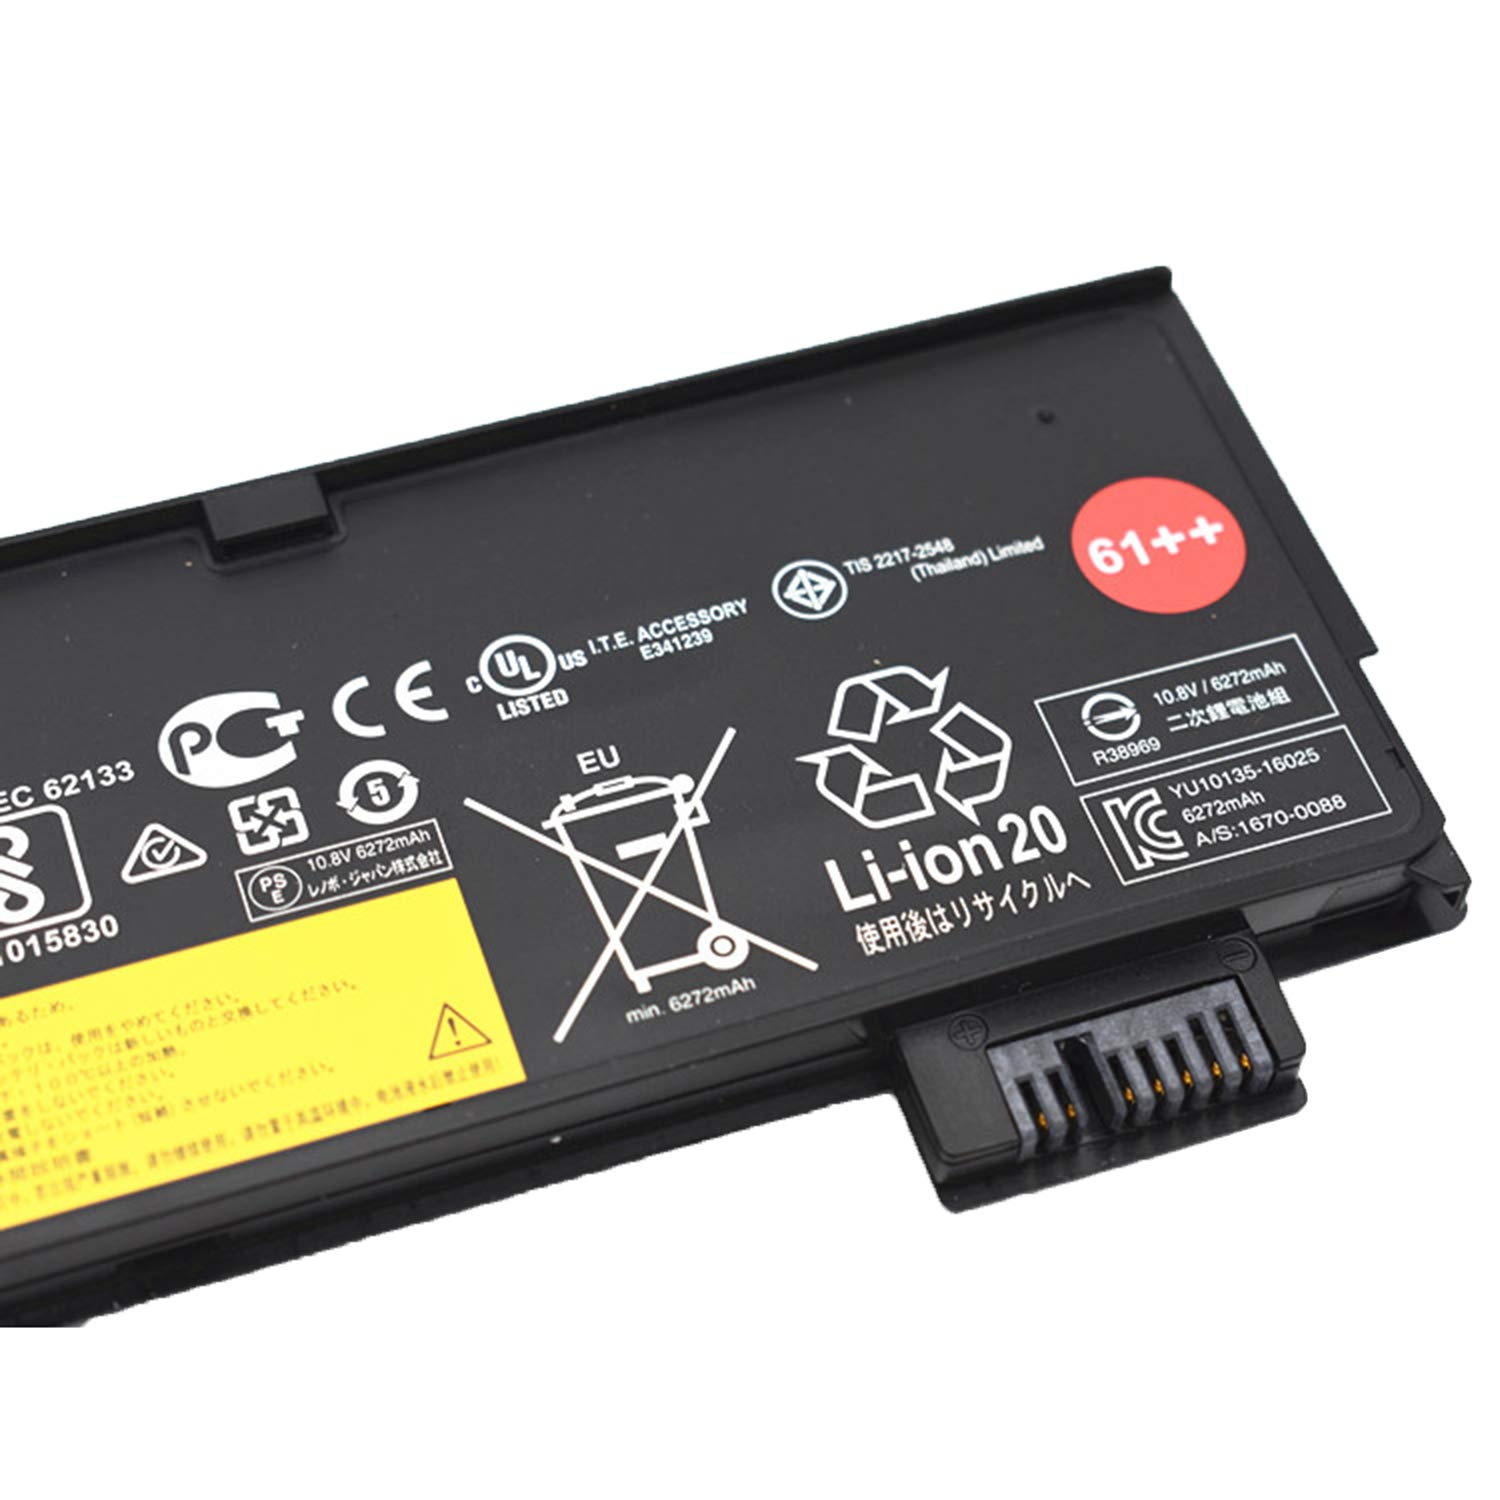 JIAZIJIA Compatible Laptop Battery with Lenovo 01AV427 [10.8V 72Wh 6600mAh 6-Cell] ThinkPad P51S P52S T470 T480 T570 T580 TP25 A475 A485 Series 61++ 01AV428 01AV492 4X50M08812 SB10K97584 SB10K97585 by JIAZIJIA (Image #3)